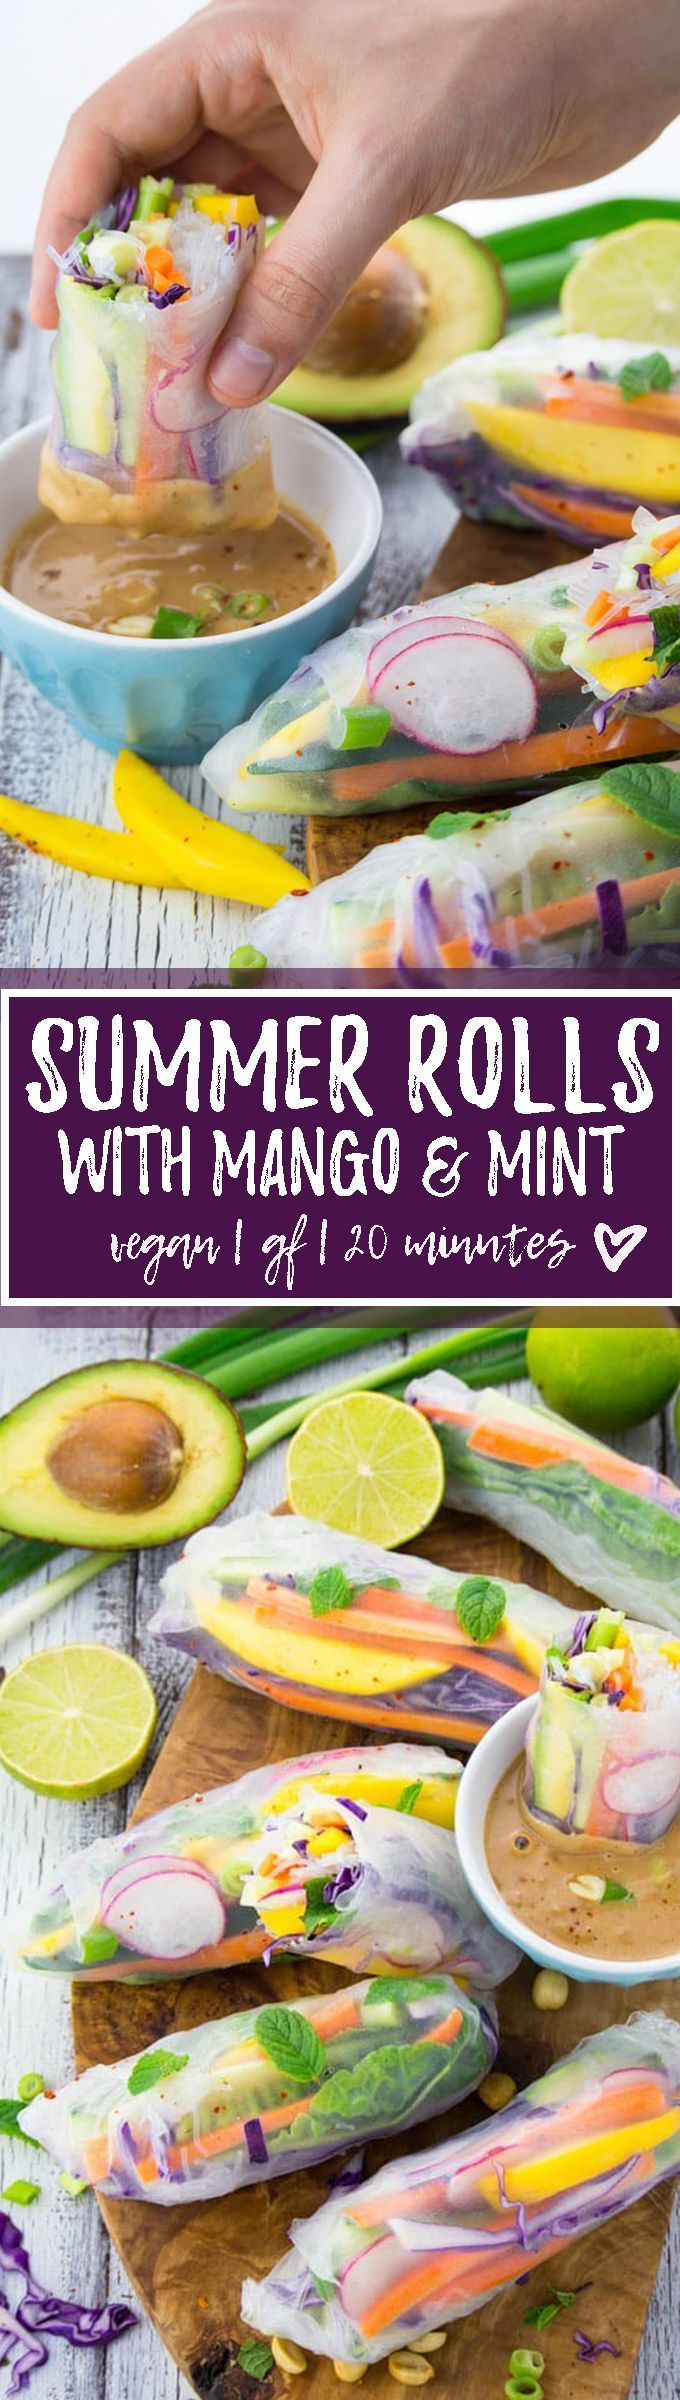 These vegan summer rolls with mango and mint are the perfect light dinner for hot summer days. They're healthy, fresh, low in calories, and super delicious! Oh, how I love healthy vegan recipes like t (Diet Recipes)